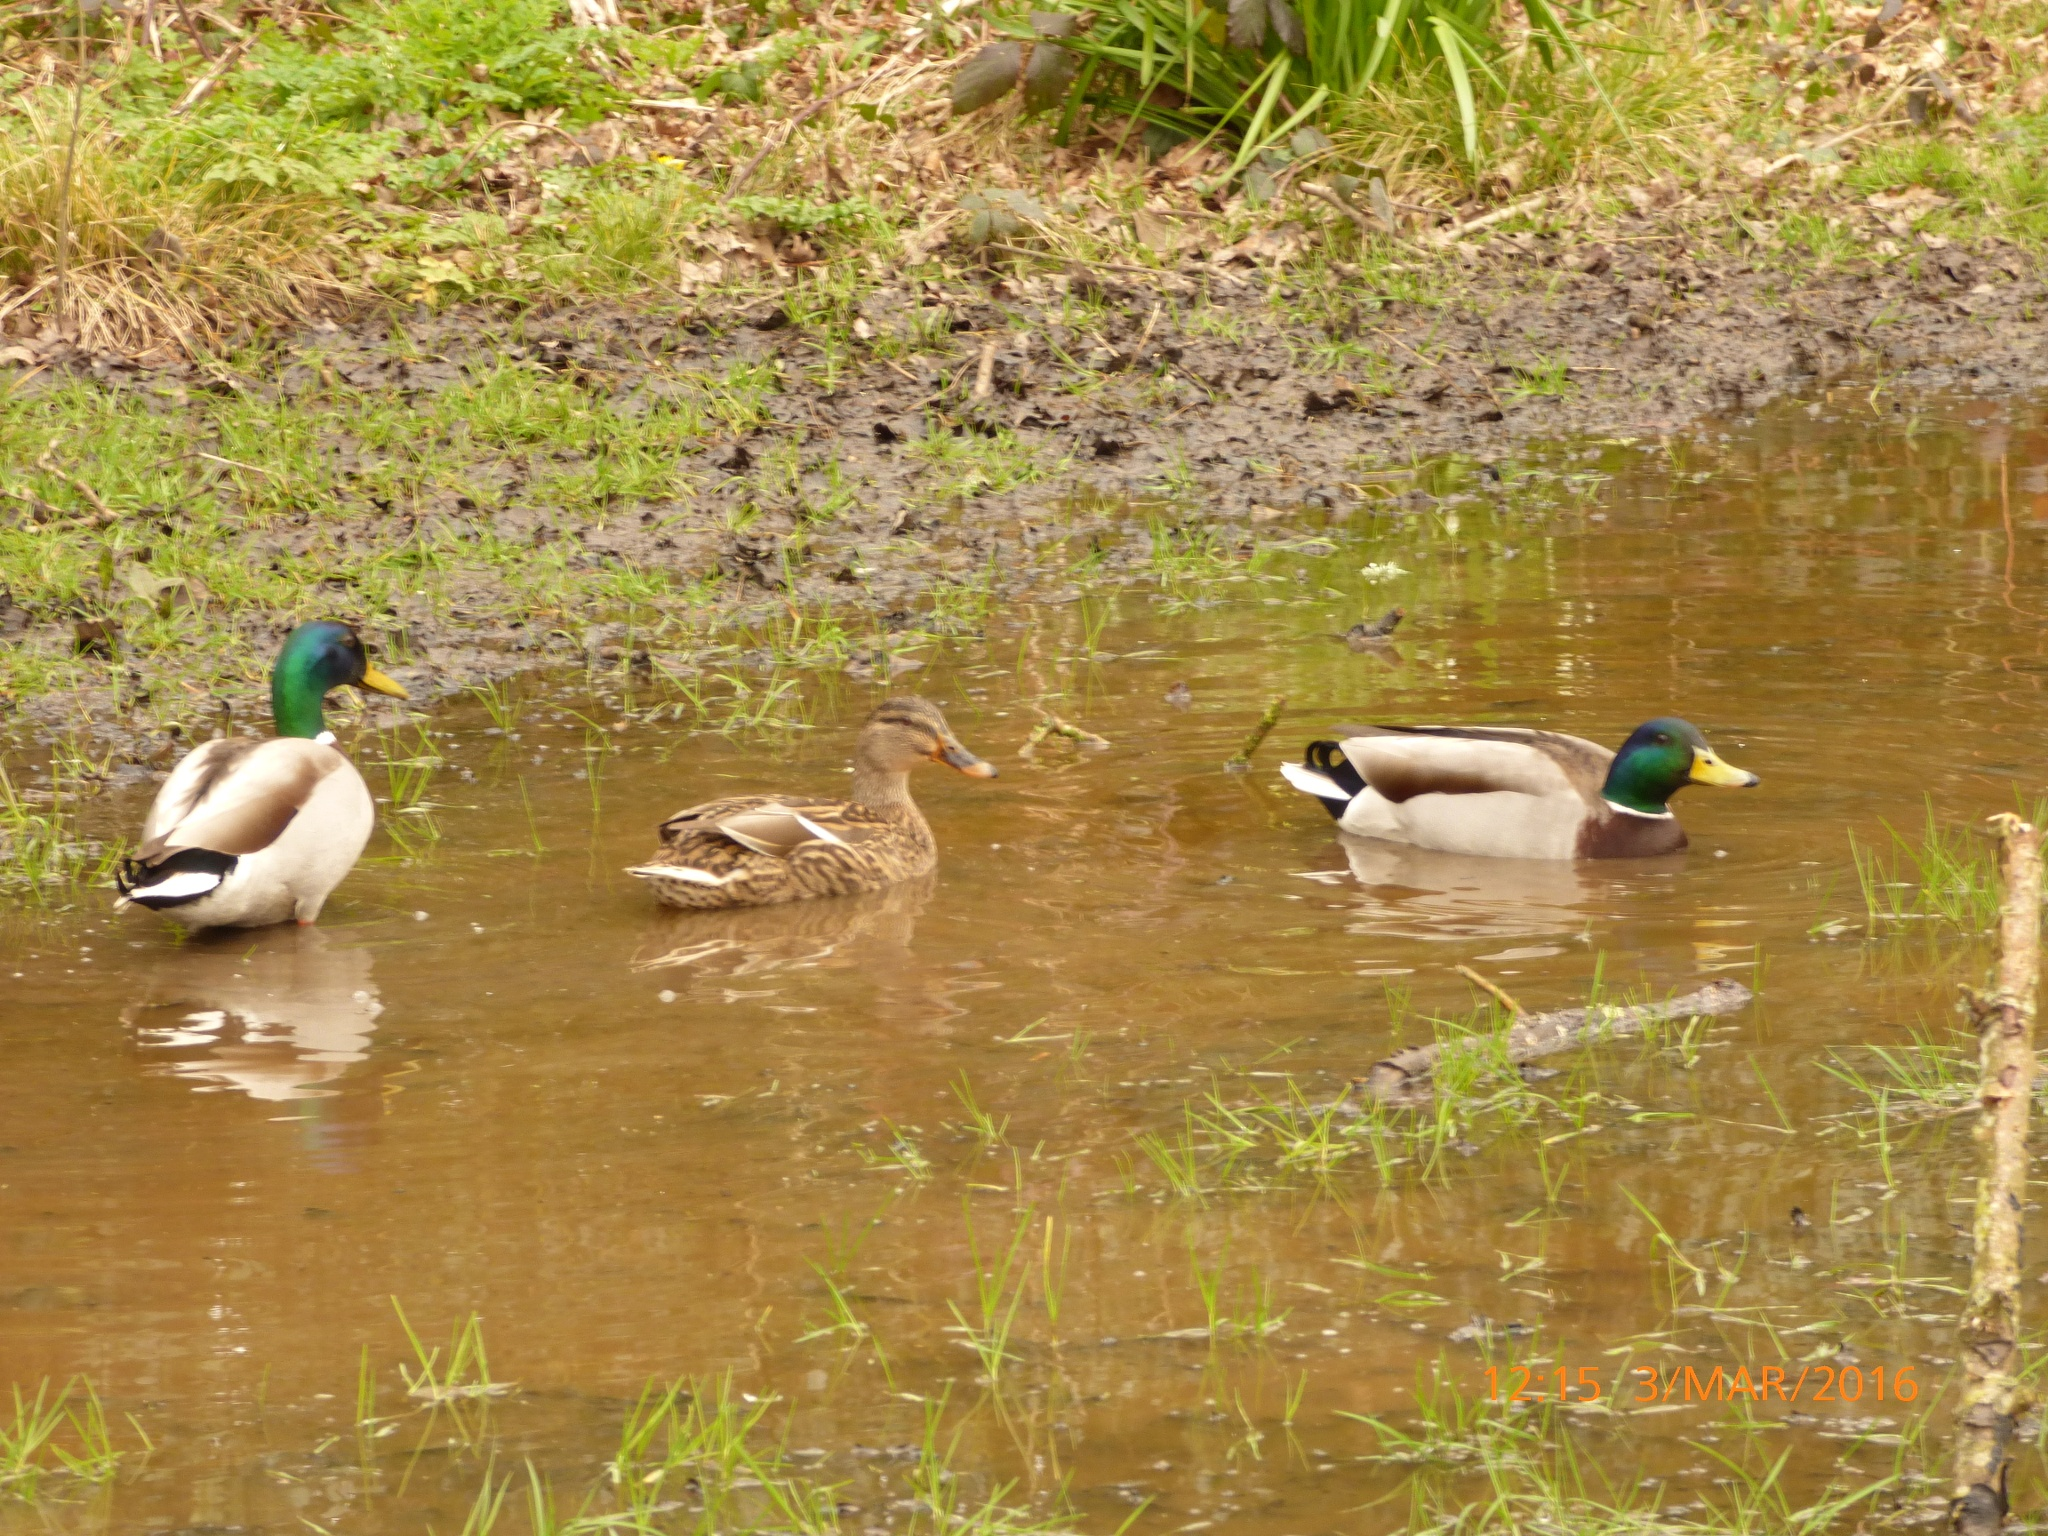 3 ducks enjoying the puddle  by chinaclowns2